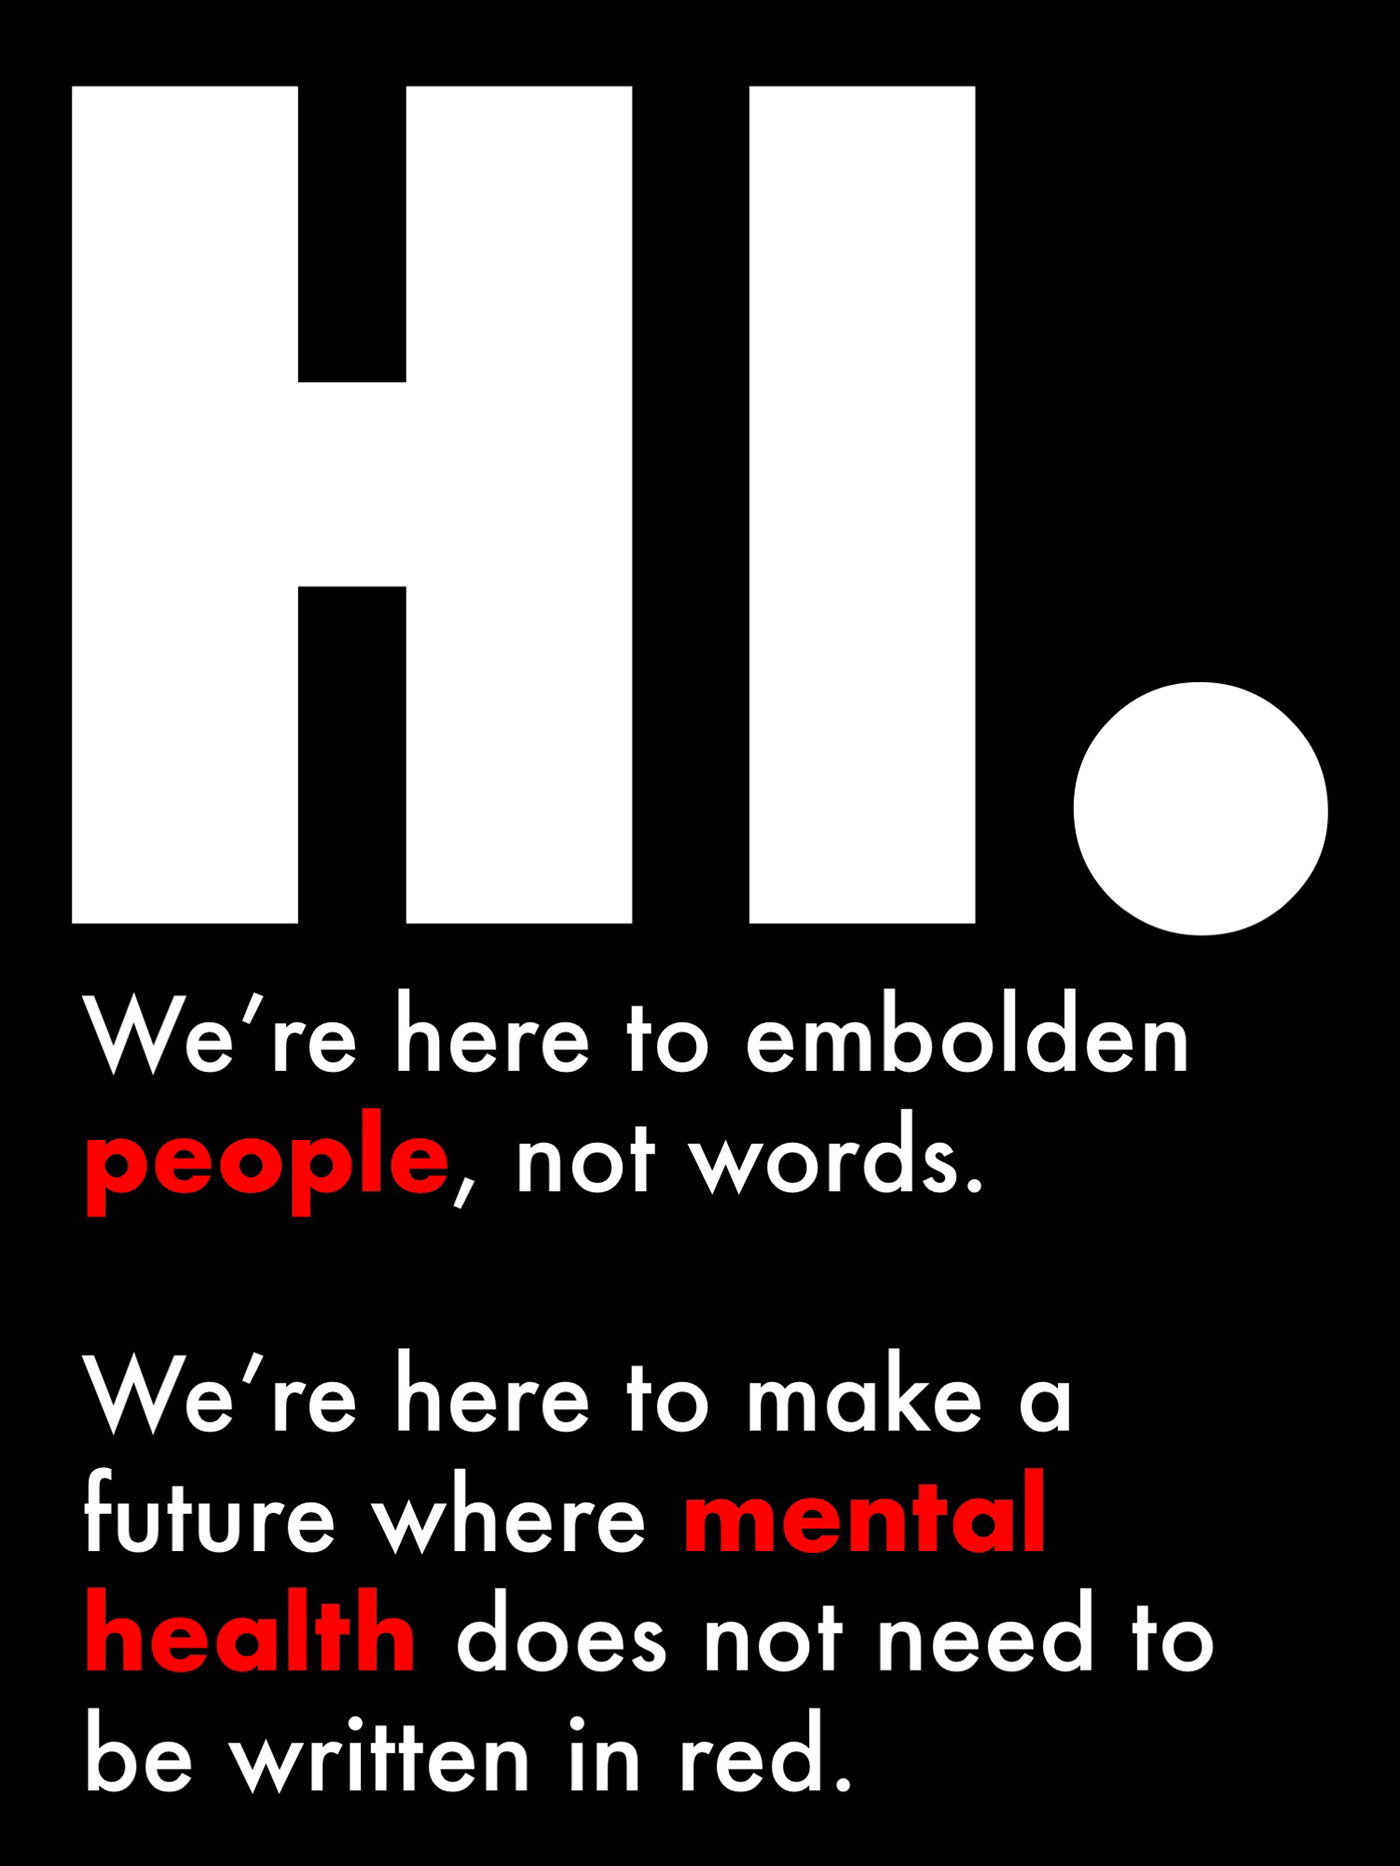 The Aim Of Campaign Was To Reduce And Eliminate Stigma Surrounding Mental Health Issues Encourage Public Discuss Problem